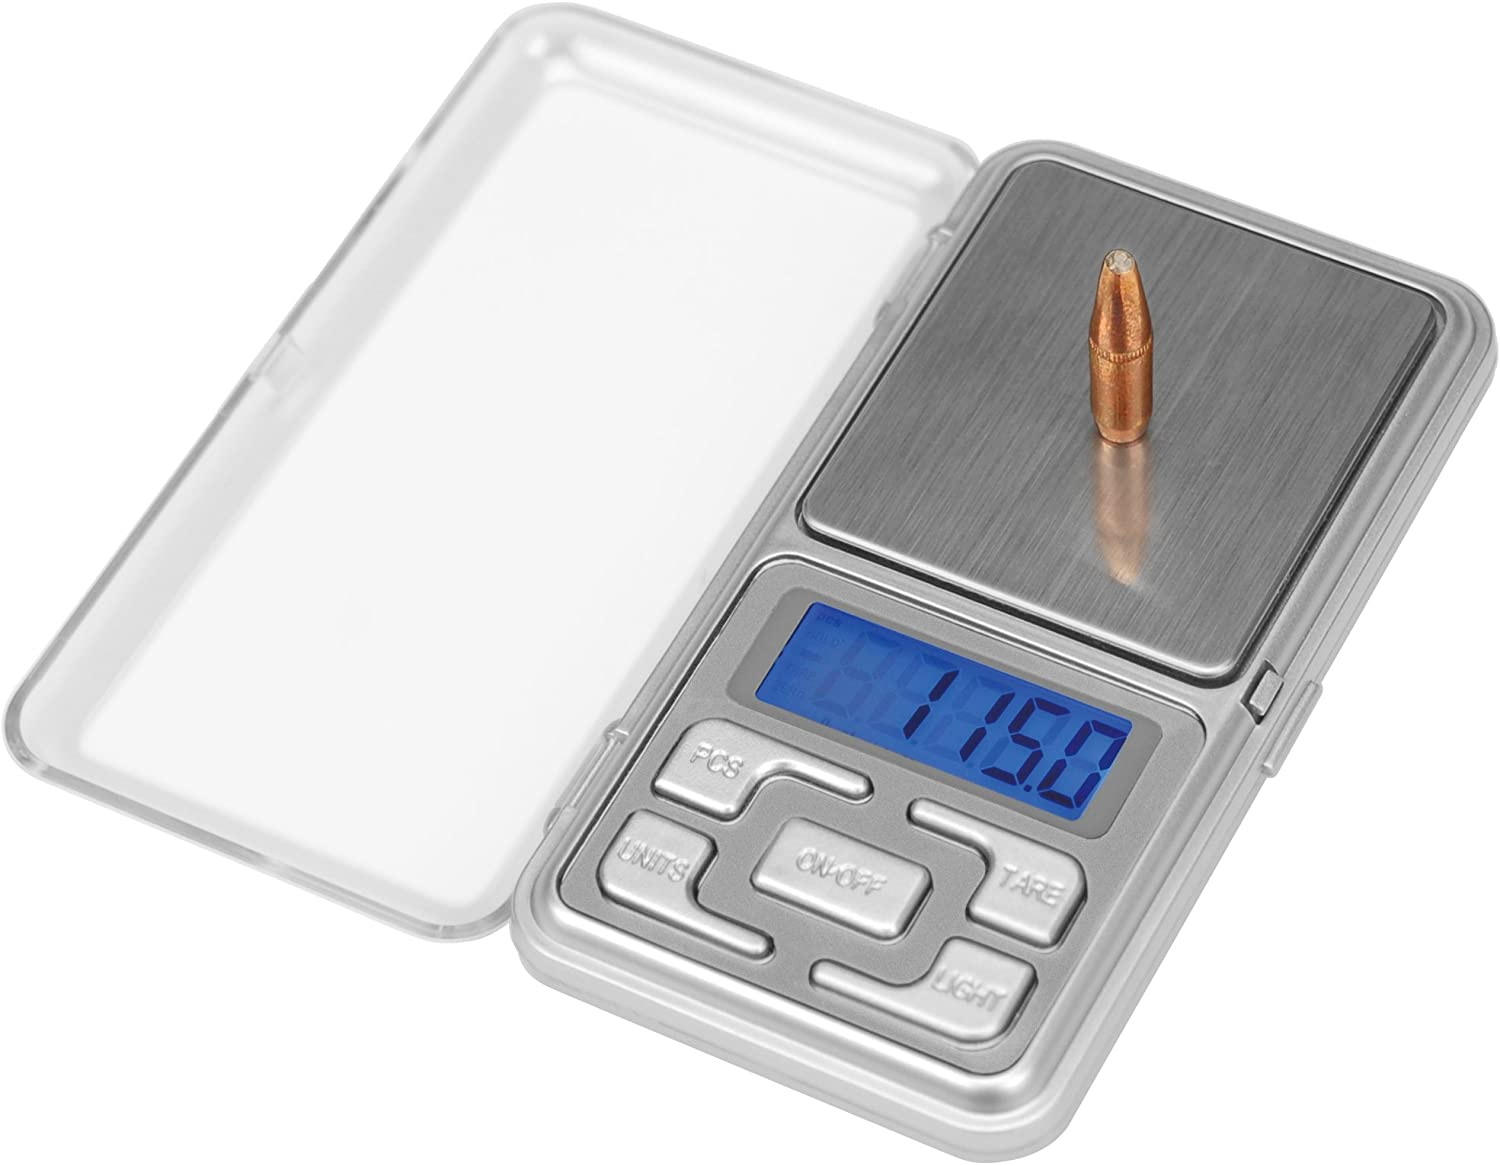 Frankford Arsenal DS 750 Digital Scale